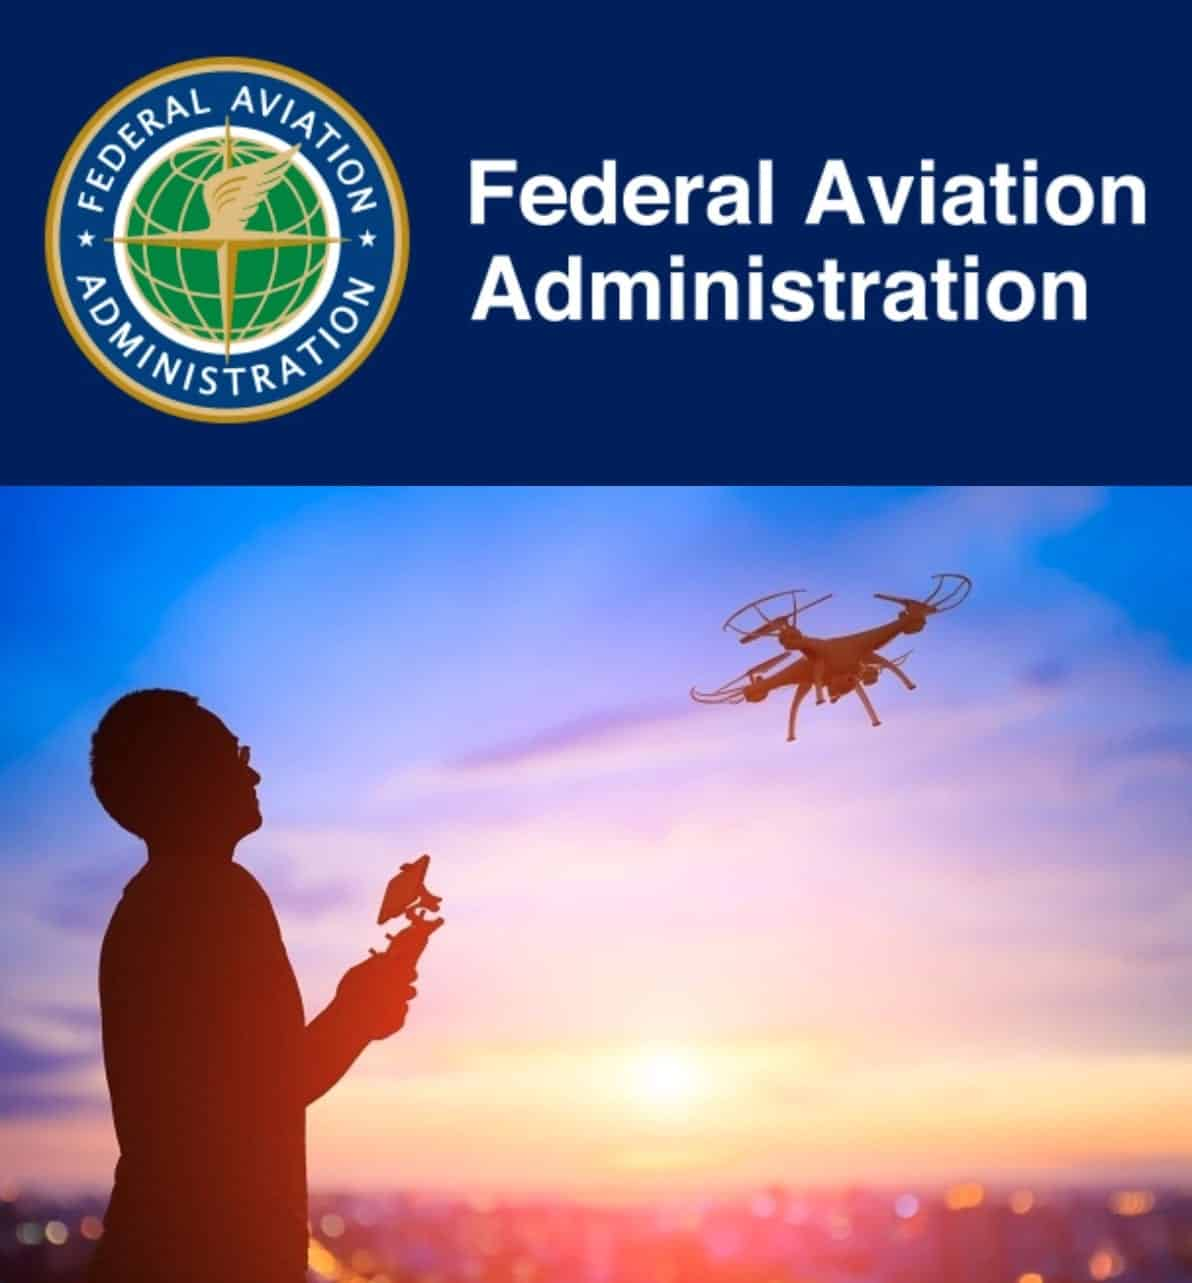 FAA takes drone safety to the Spanish-speaking community